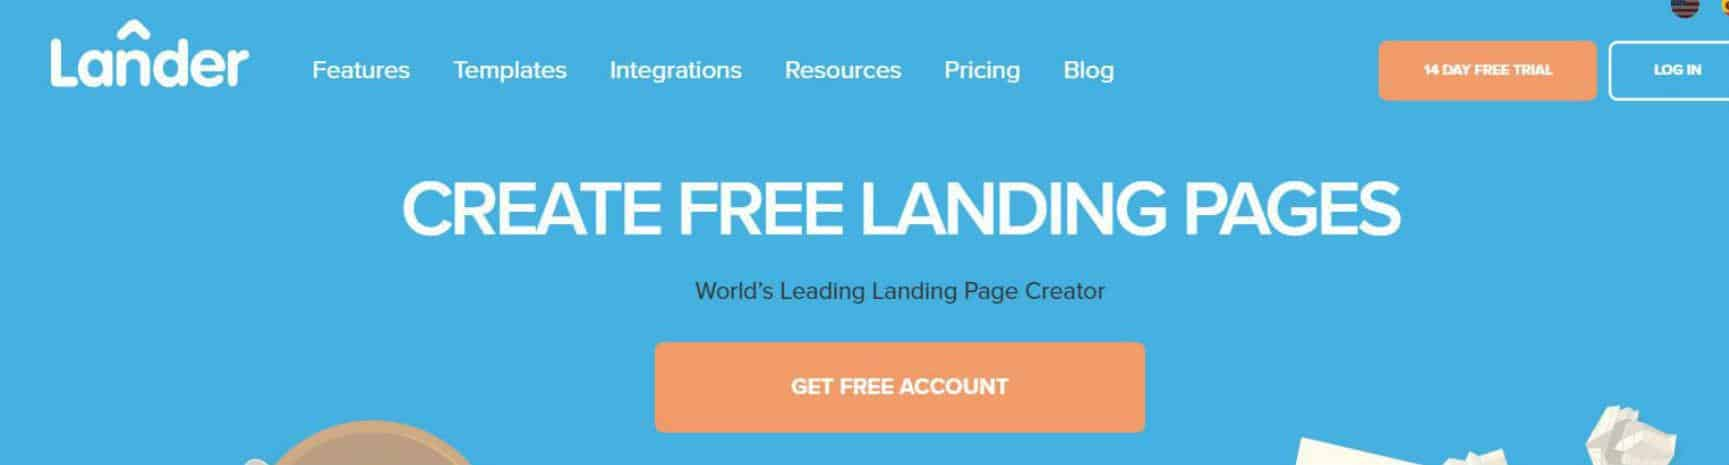 Lander Website Builder